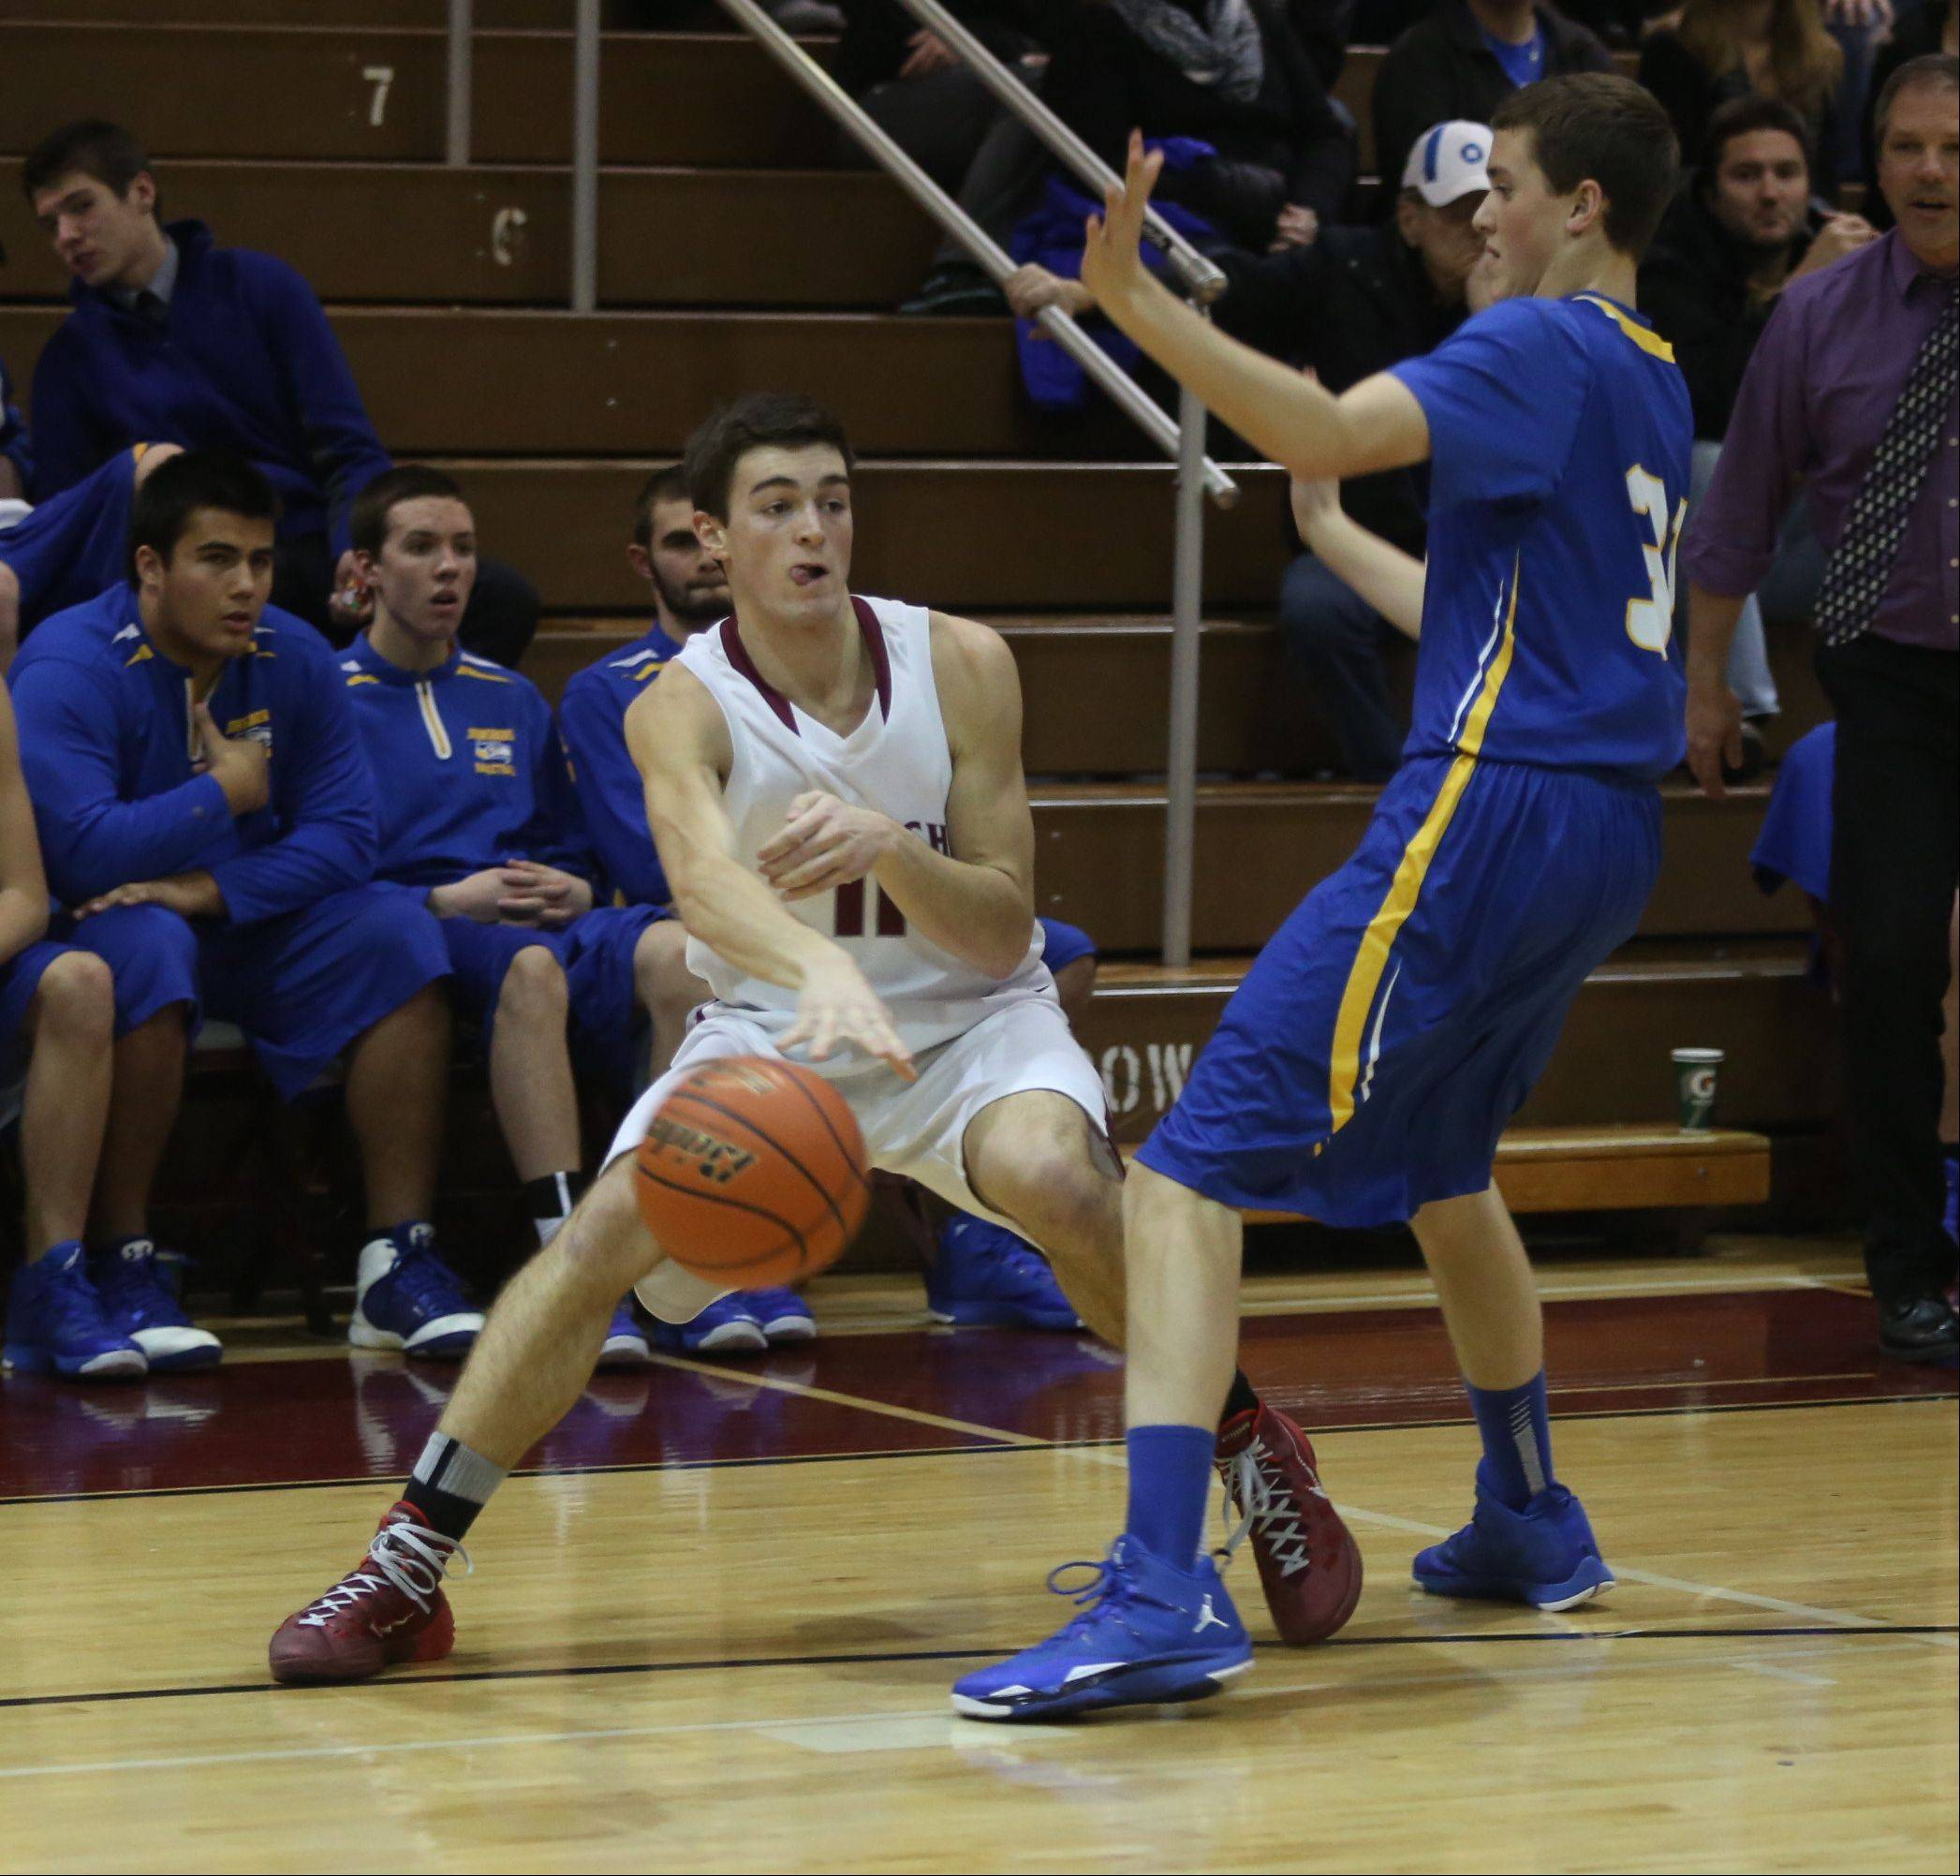 Images from the Johnsburg vs. Antioch boys basketball game on Thursday, Dec. 5.